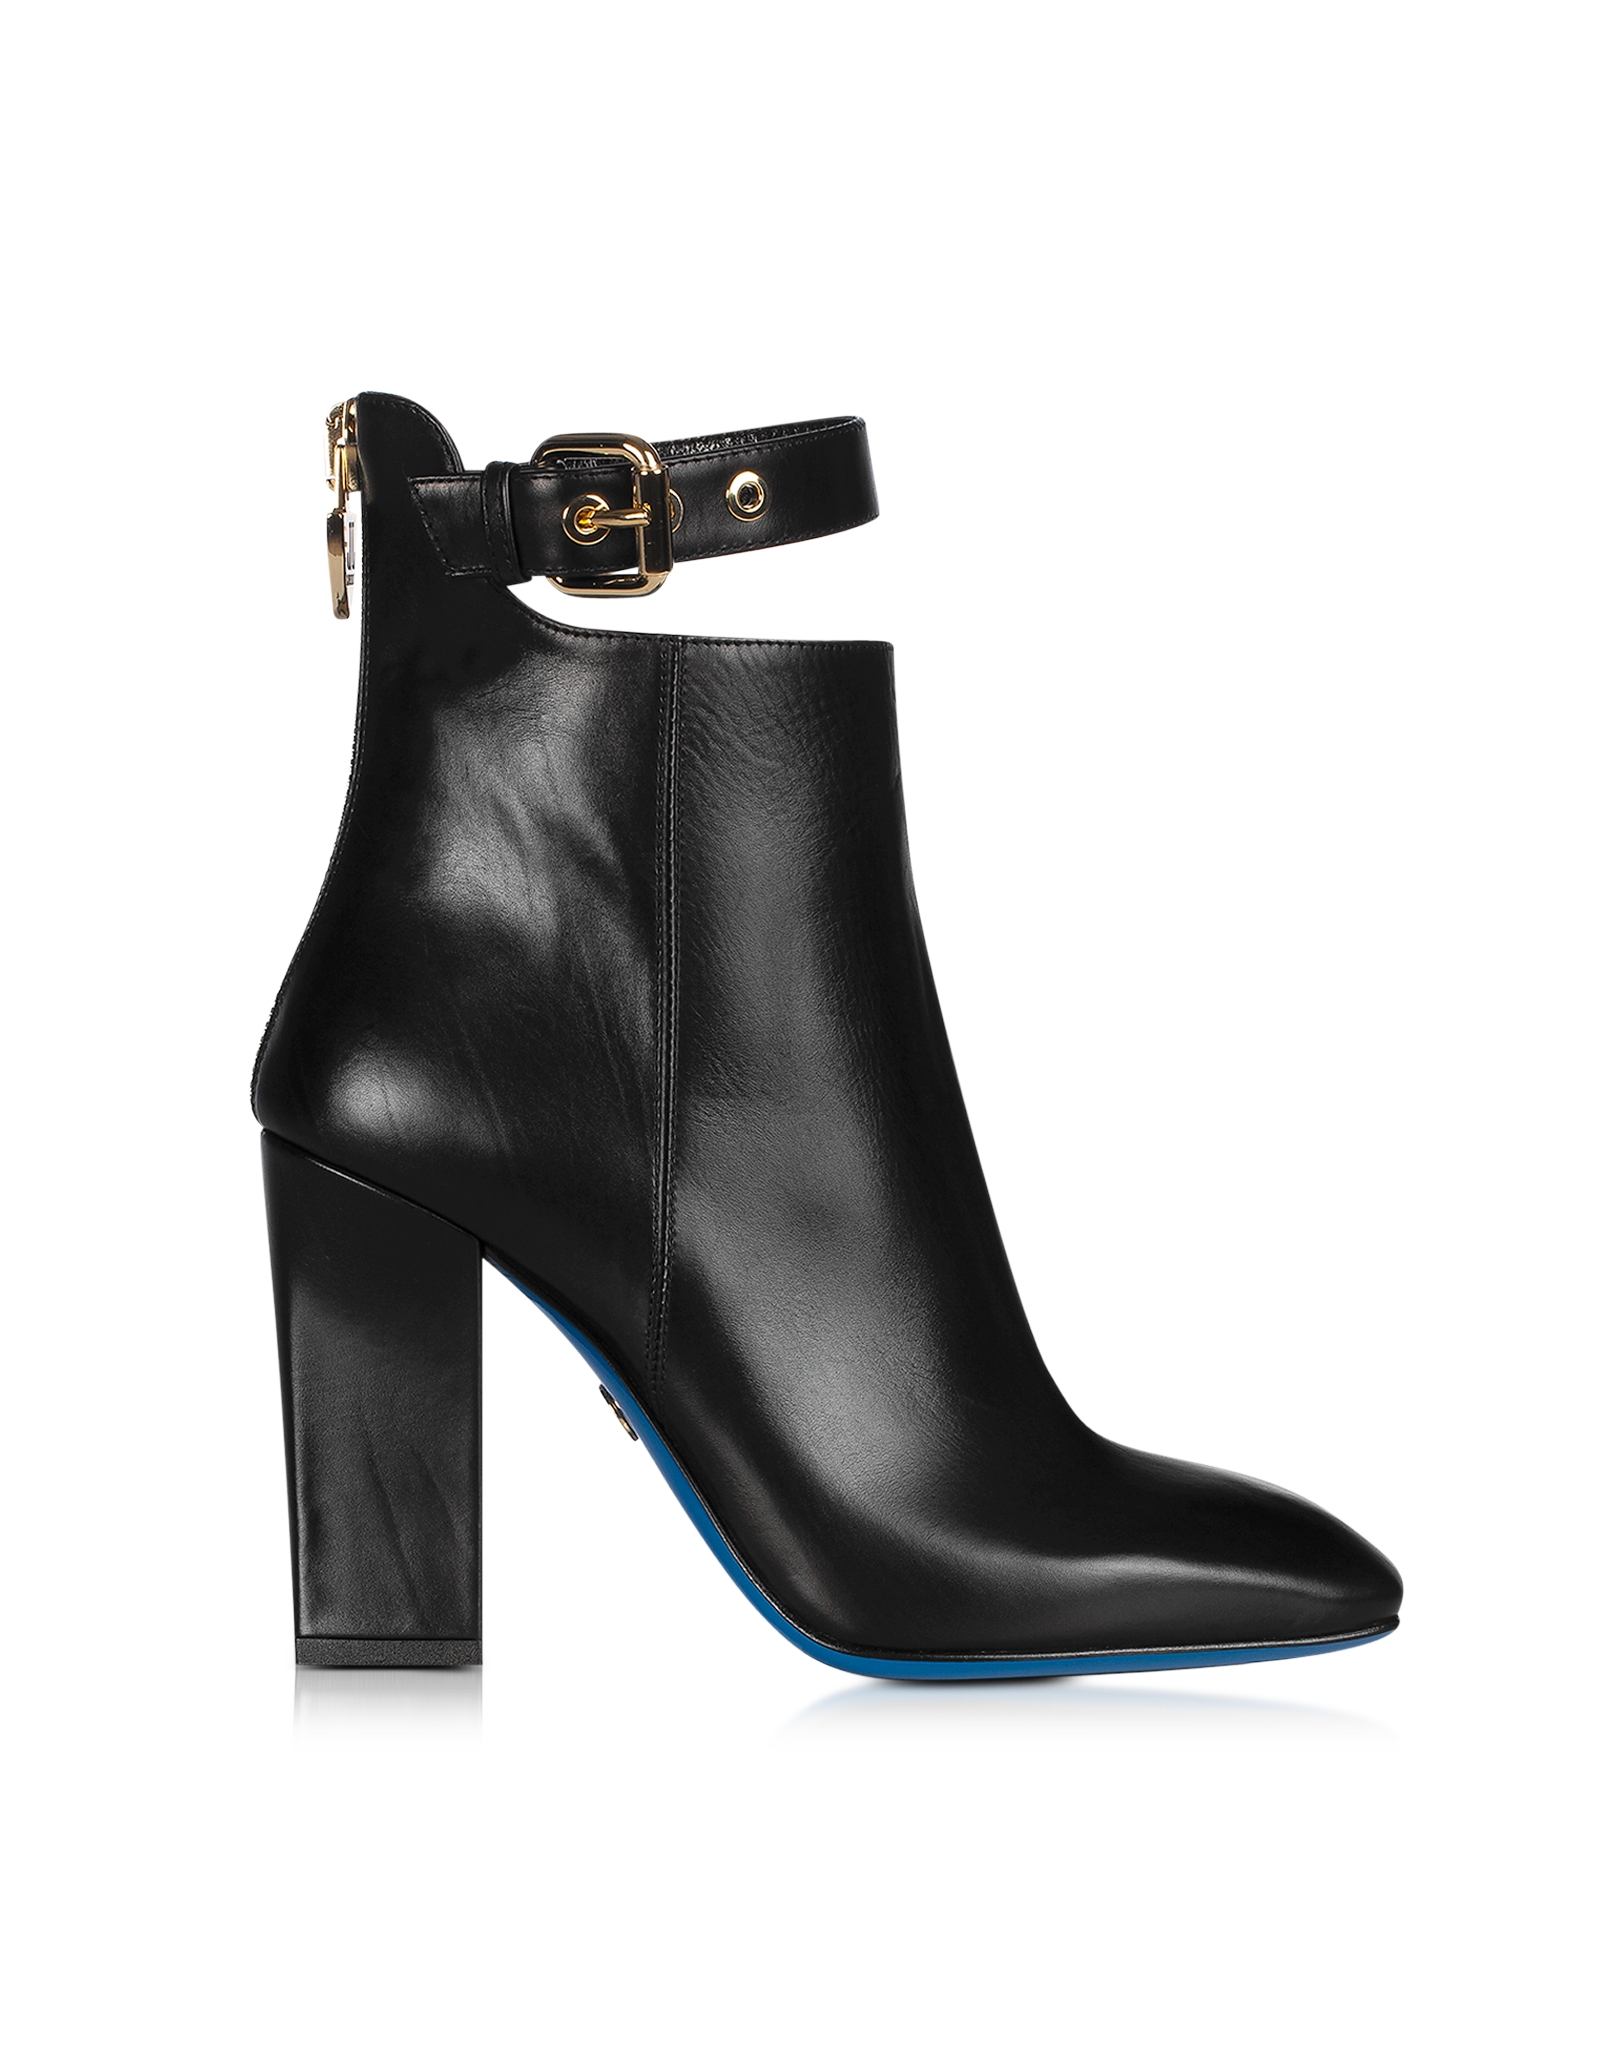 Find designer quality suede and leather ankle booties at affordable prices. New and exclusive colors and styles available. Free shipping on all orders.